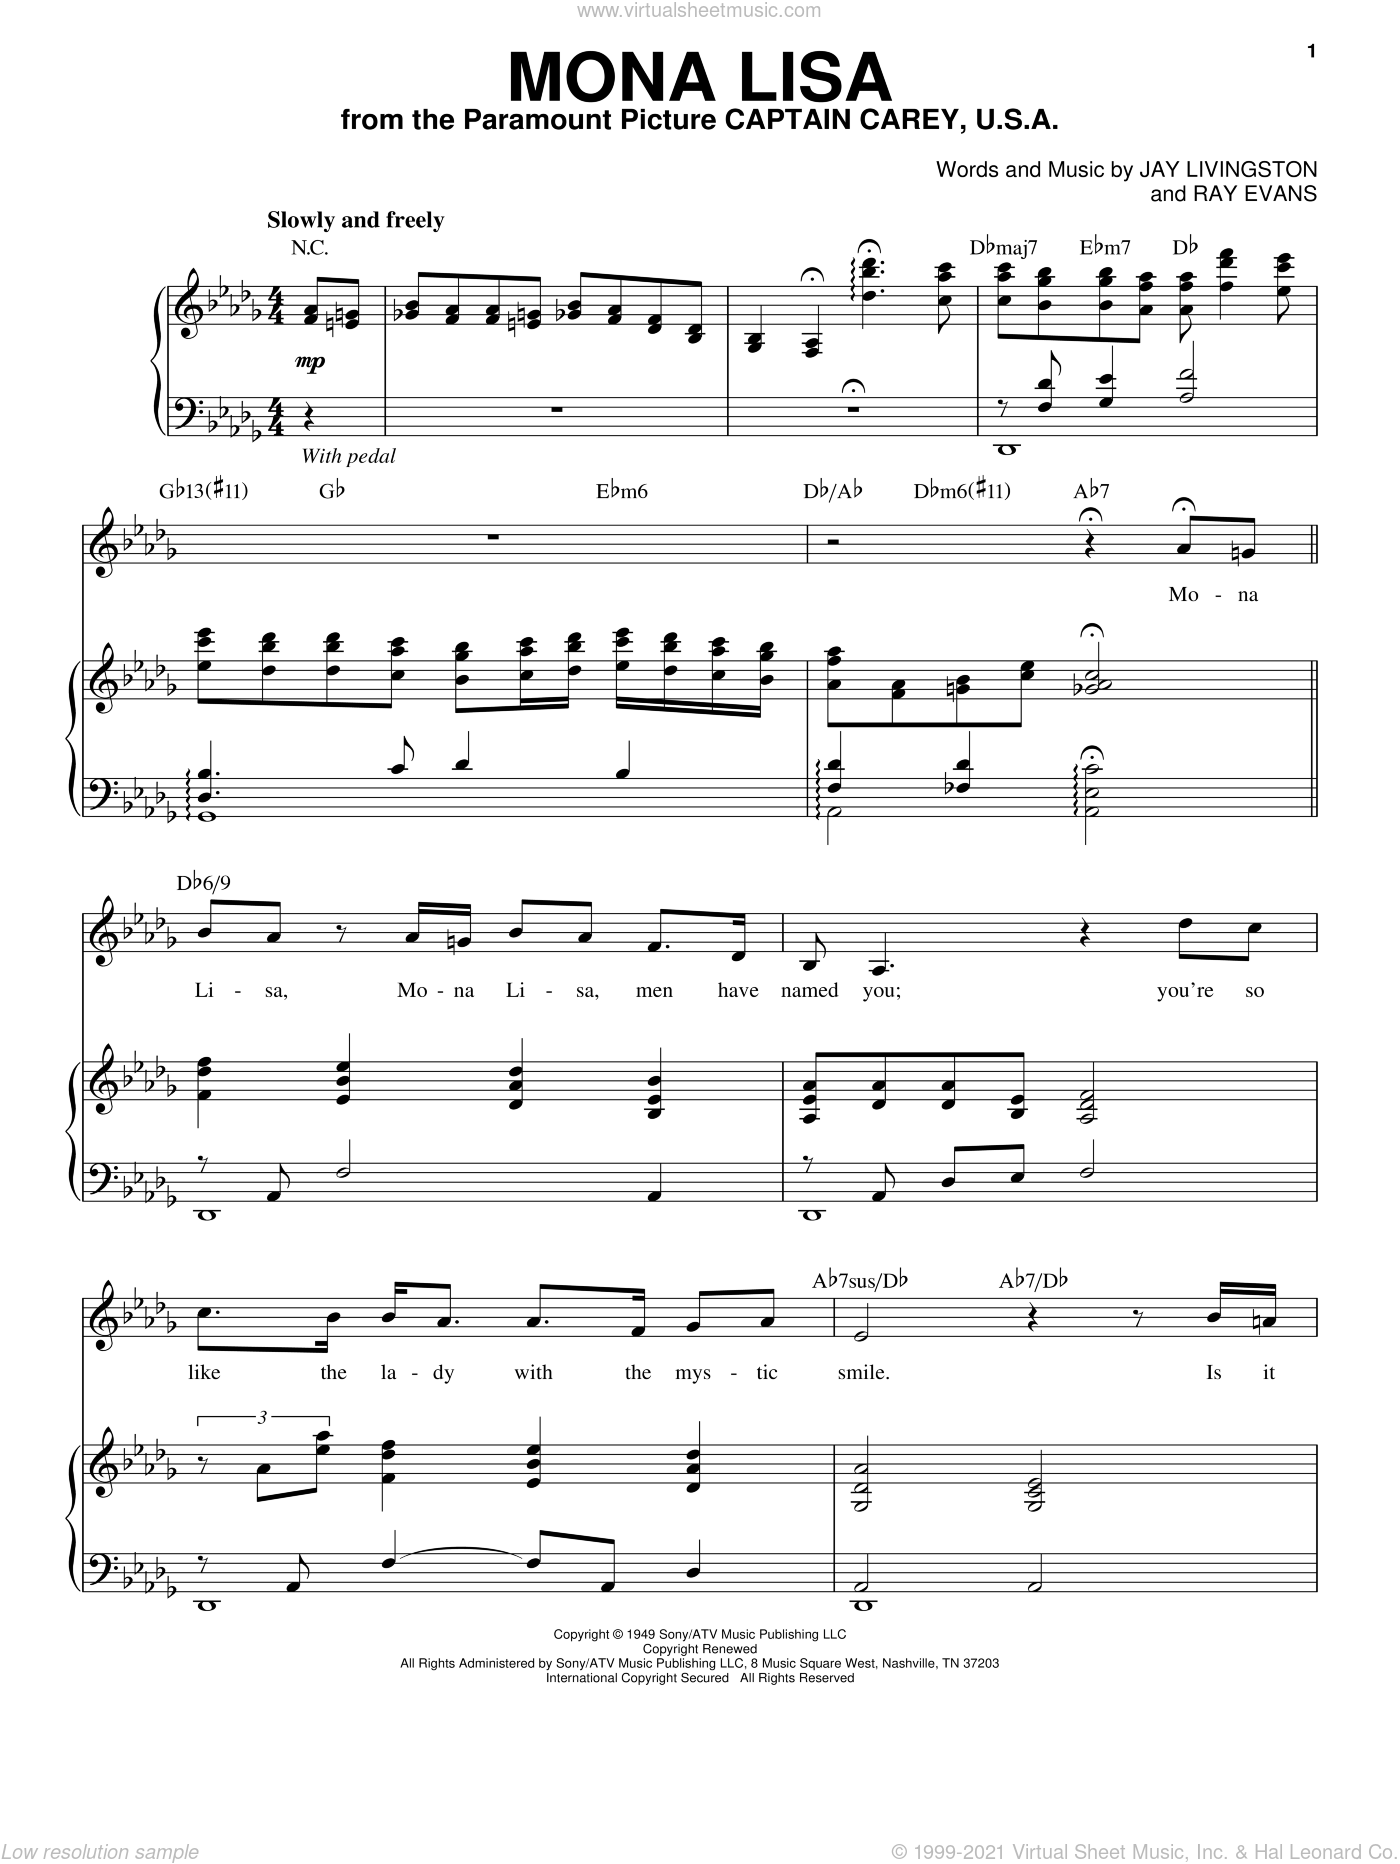 Mona Lisa sheet music for voice and piano by Ray Evans, Nat King Cole and Jay Livingston. Score Image Preview.